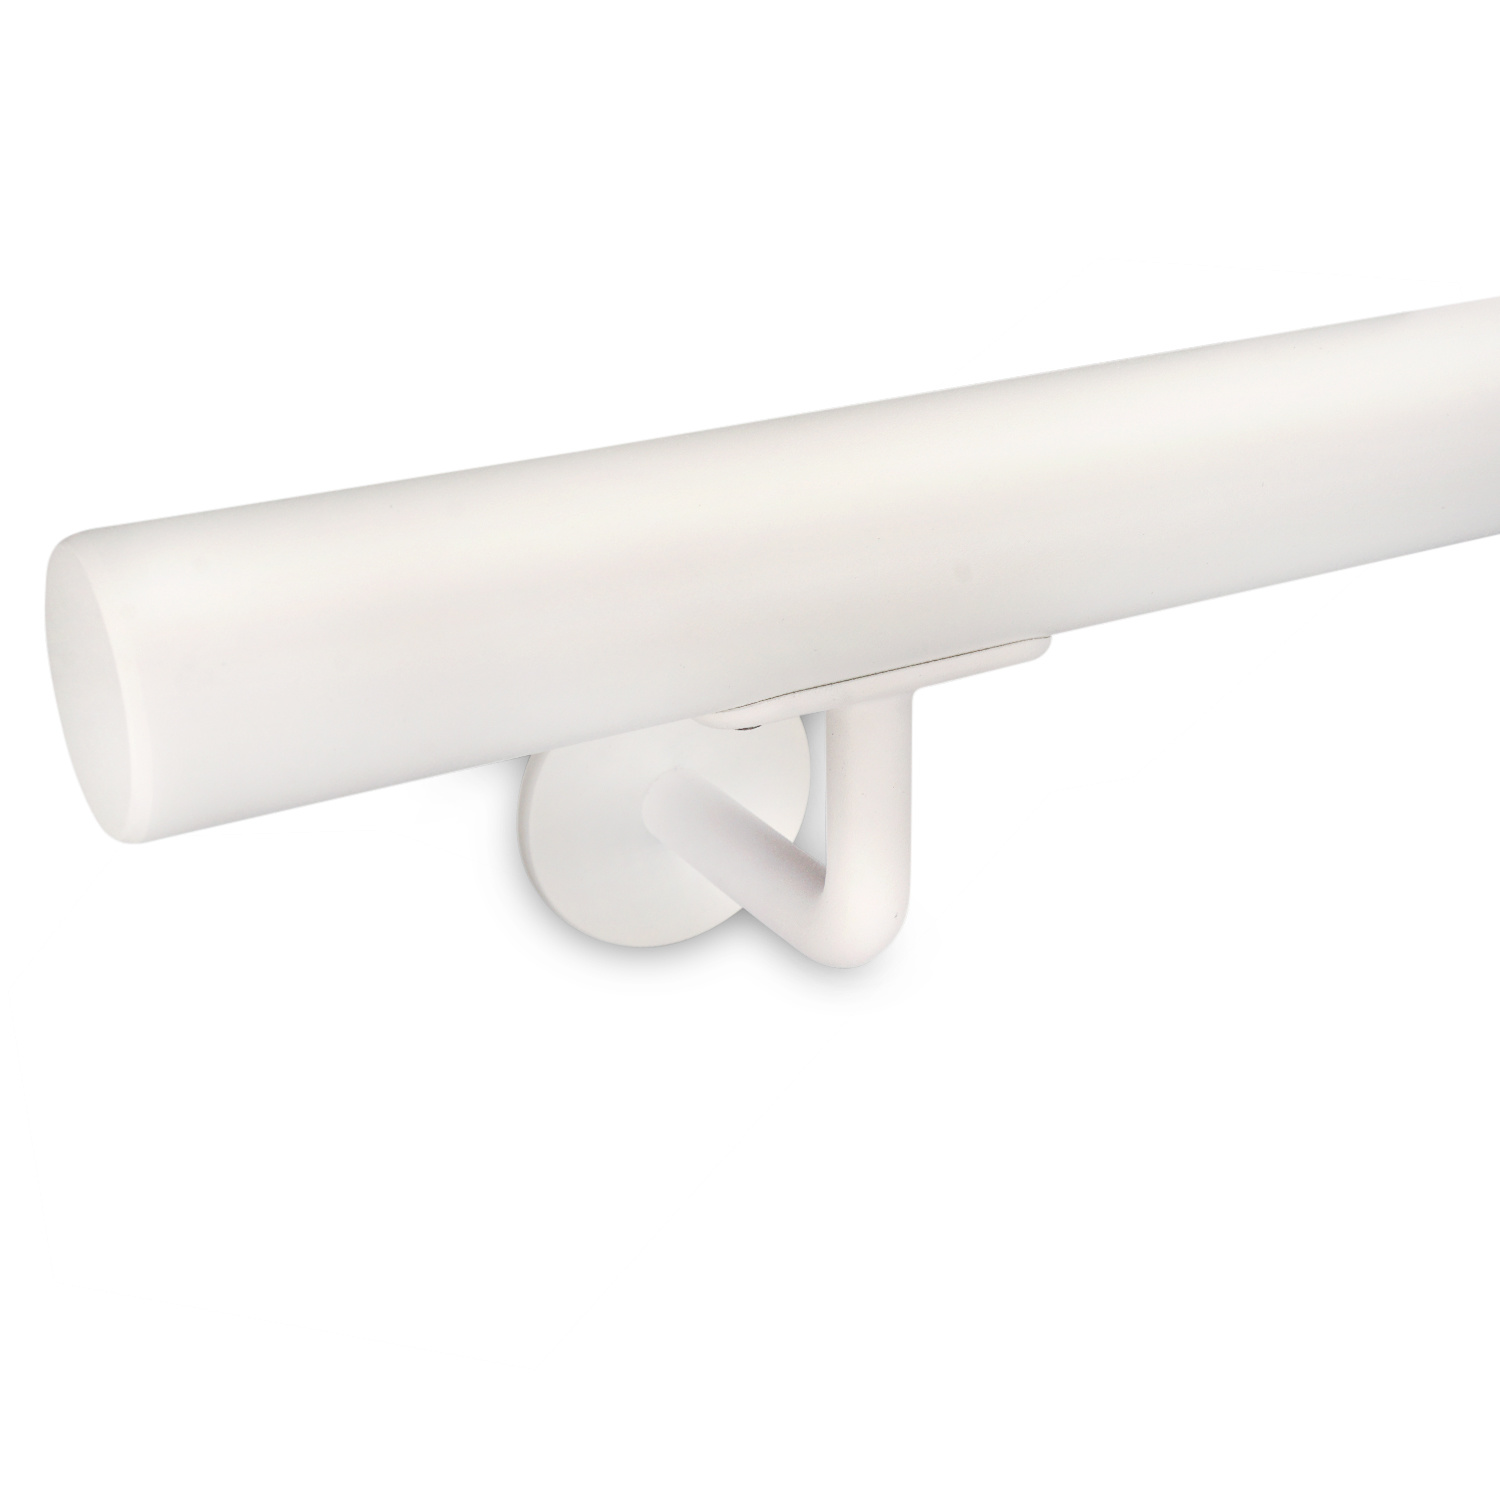 Trapleuning wit gecoat rond incl. dragers TYPE 3 - witte poedercoating